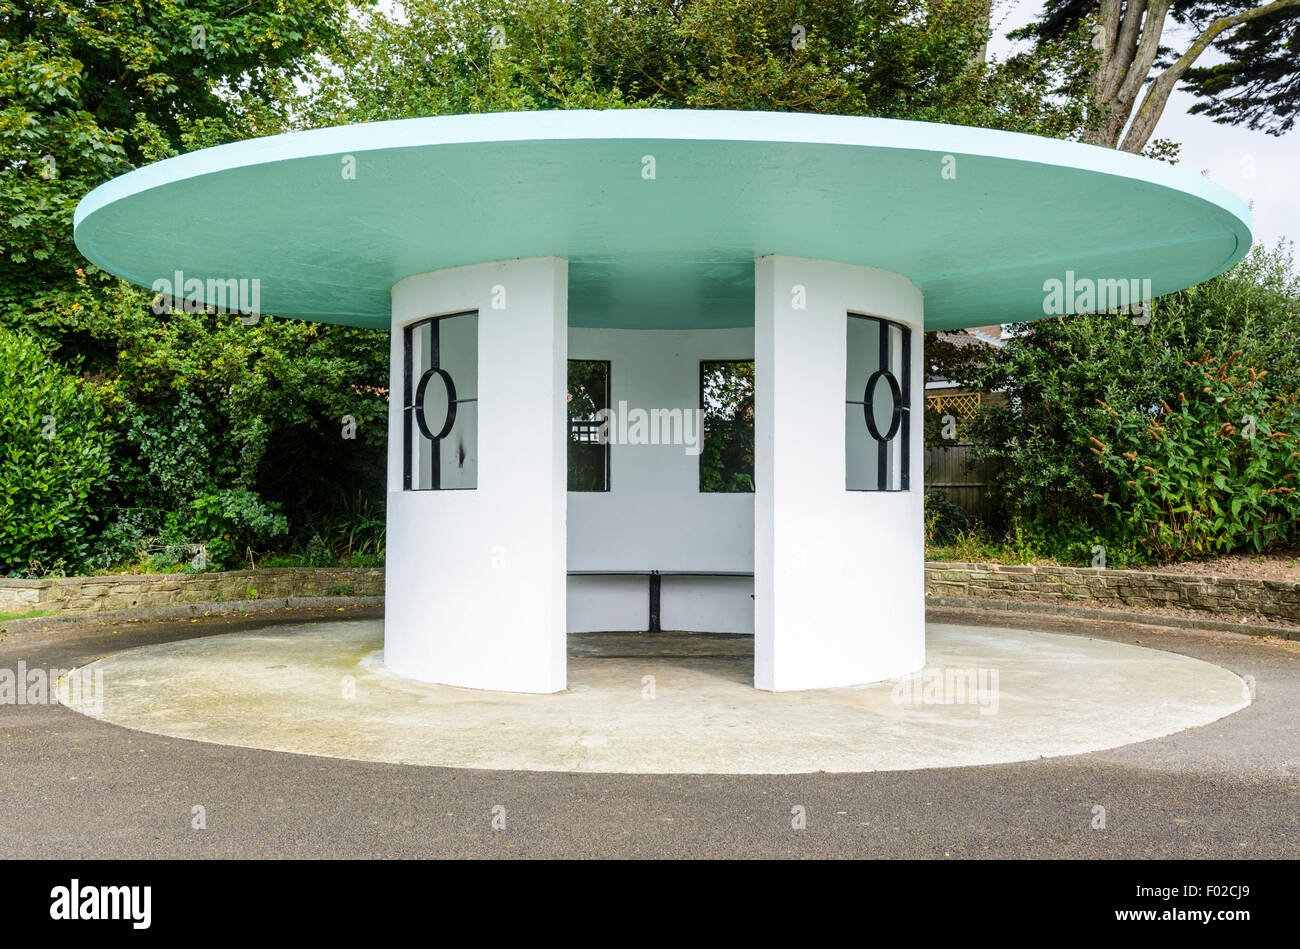 Circular Art Deco Shelter built in the 1930's in Mewsbrook Park, Littlehampton, West Sussex, England, UK. - Stock Image